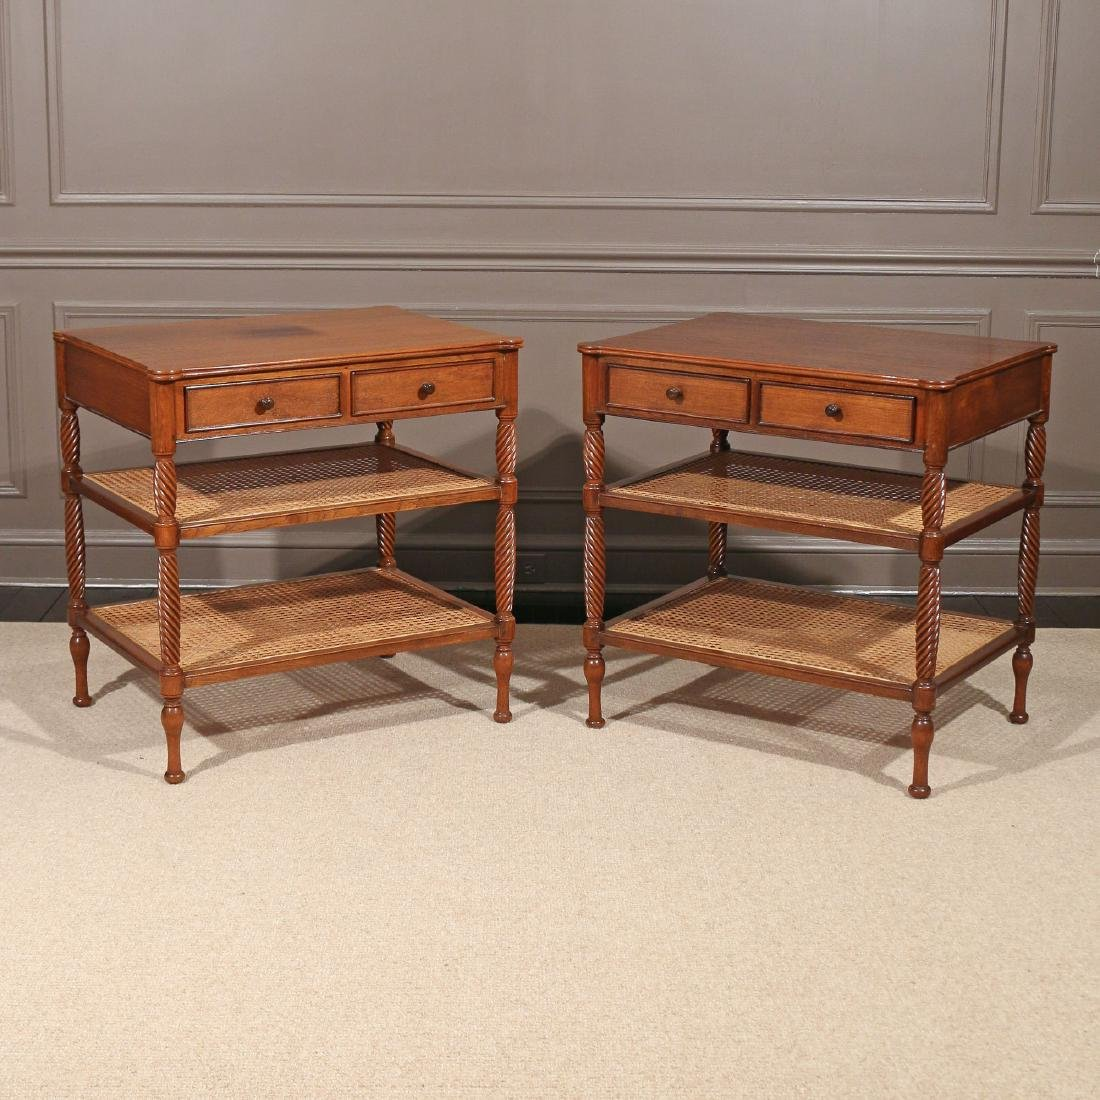 PAIR REGENCY-STYLE MAHOGANY END TABLES